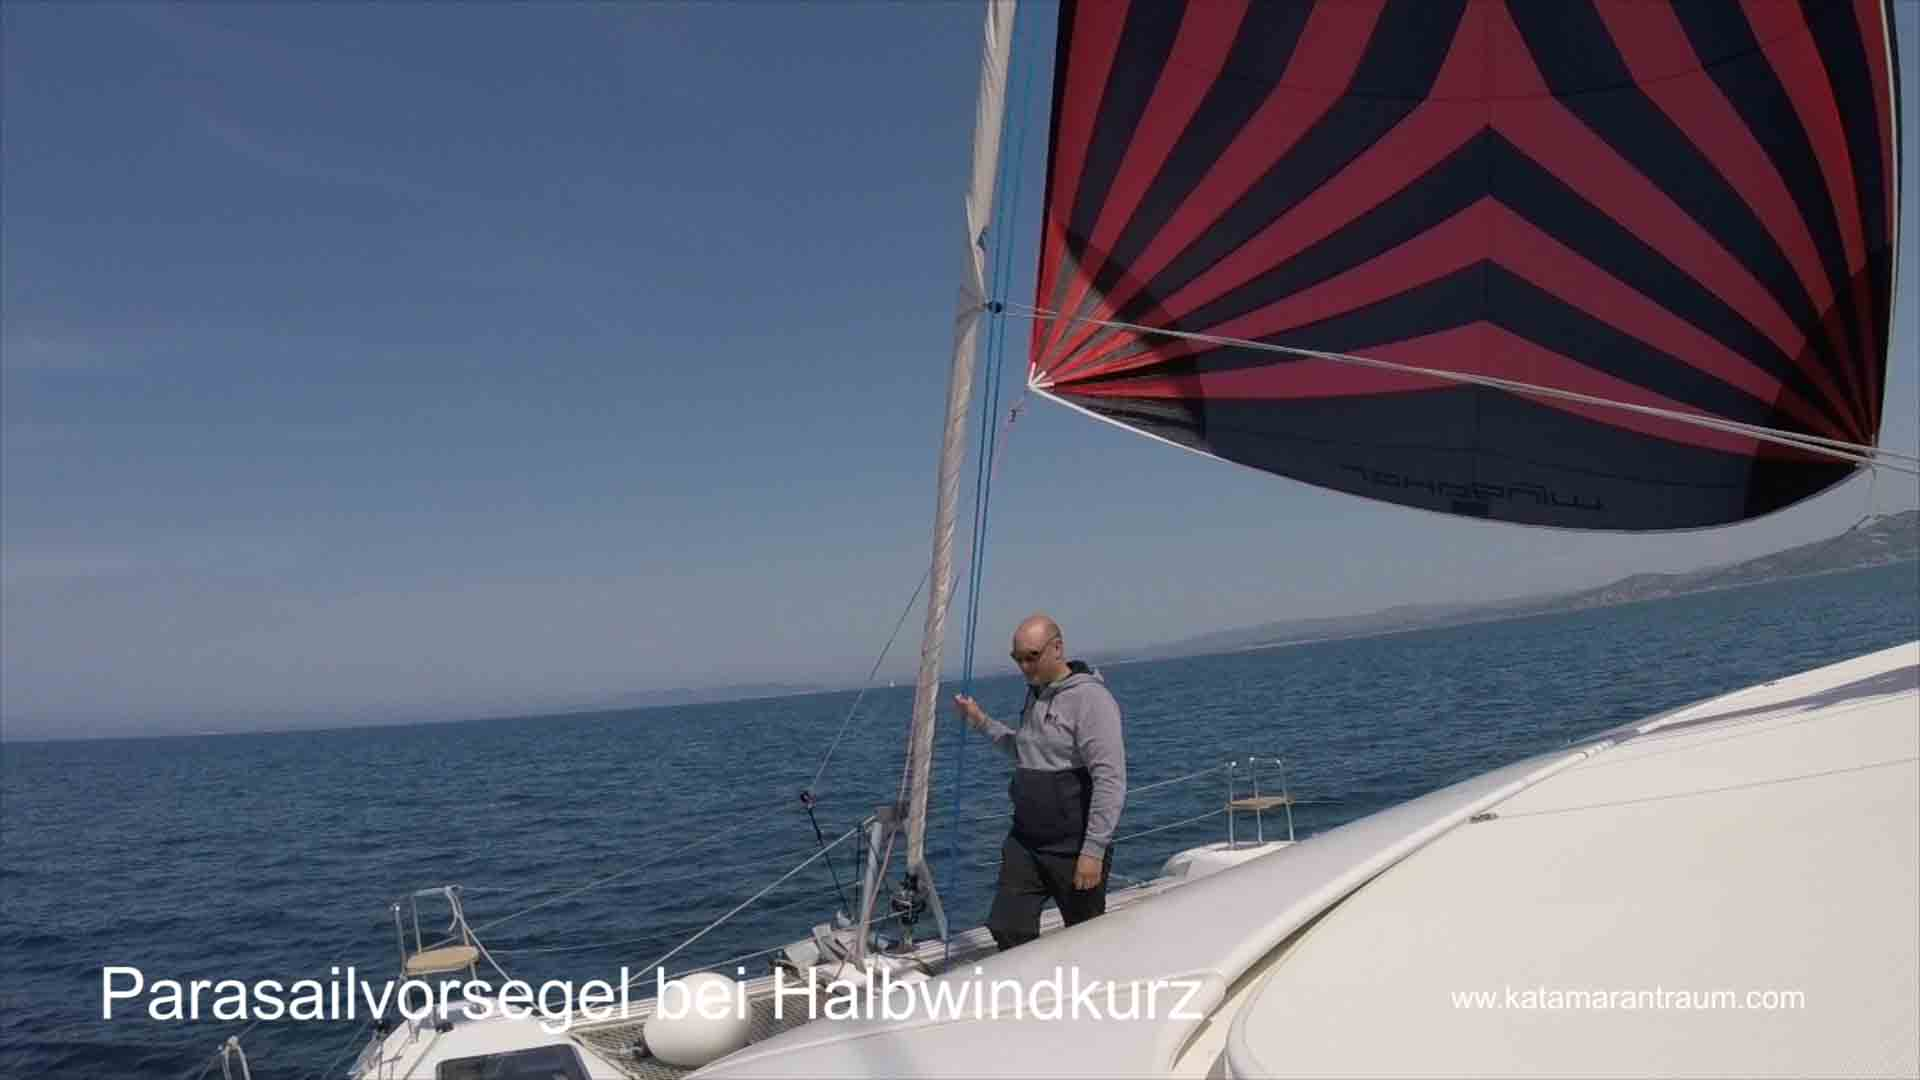 We have pulled over the Wingaker to half wind sailing